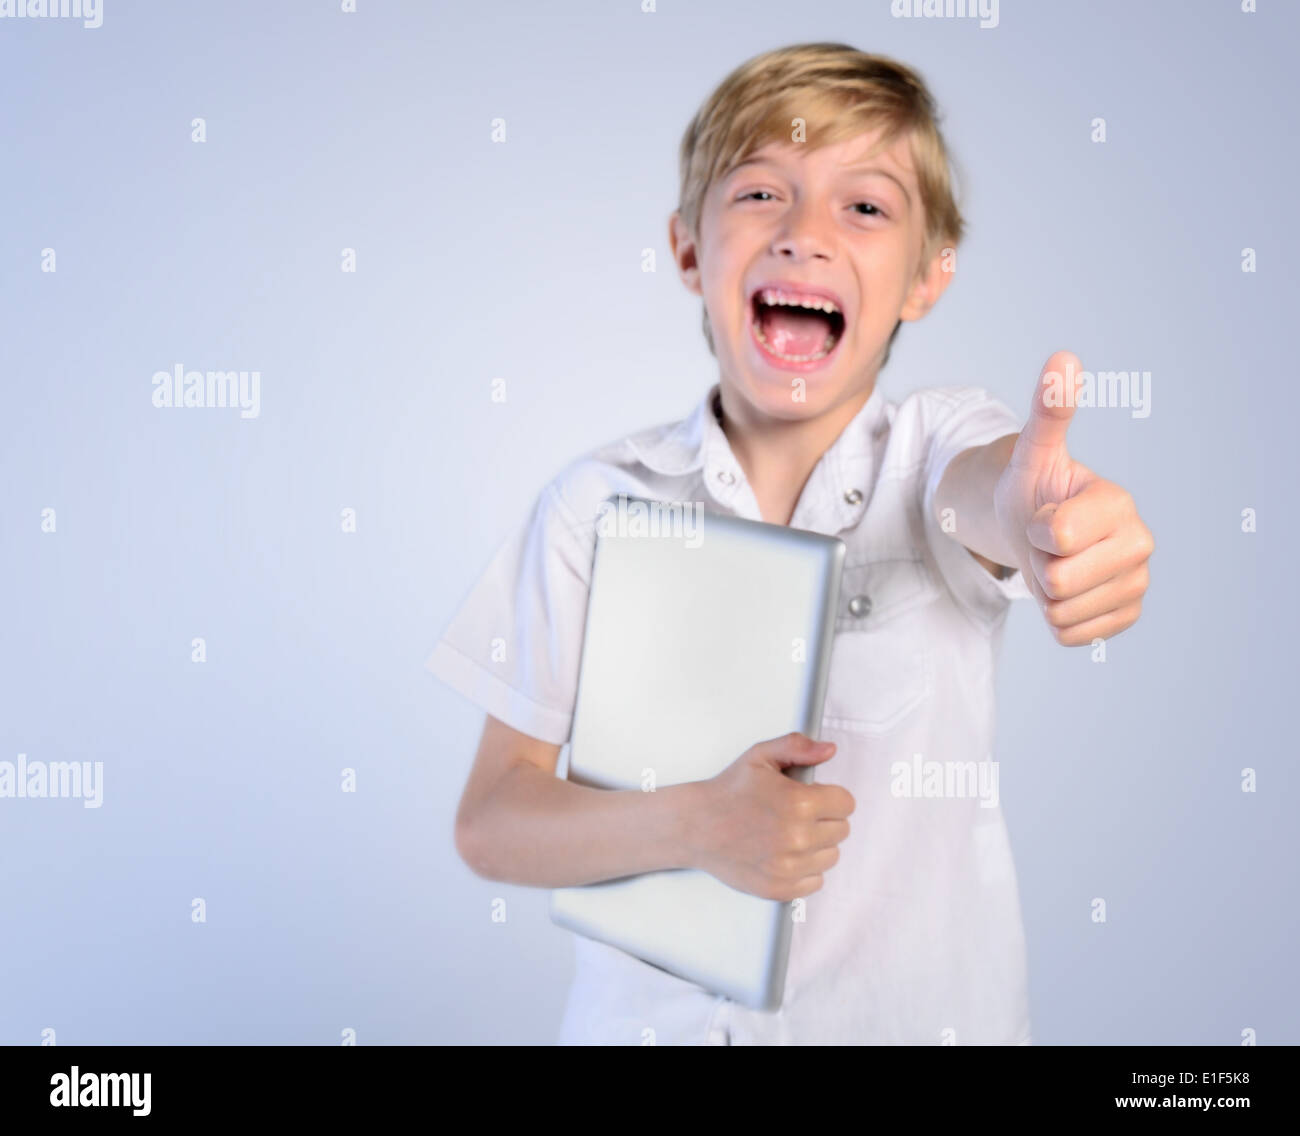 adorable agreement appreciation approval background casual child childhood congratulation cute fun excellent gesture glad good g - Stock Image